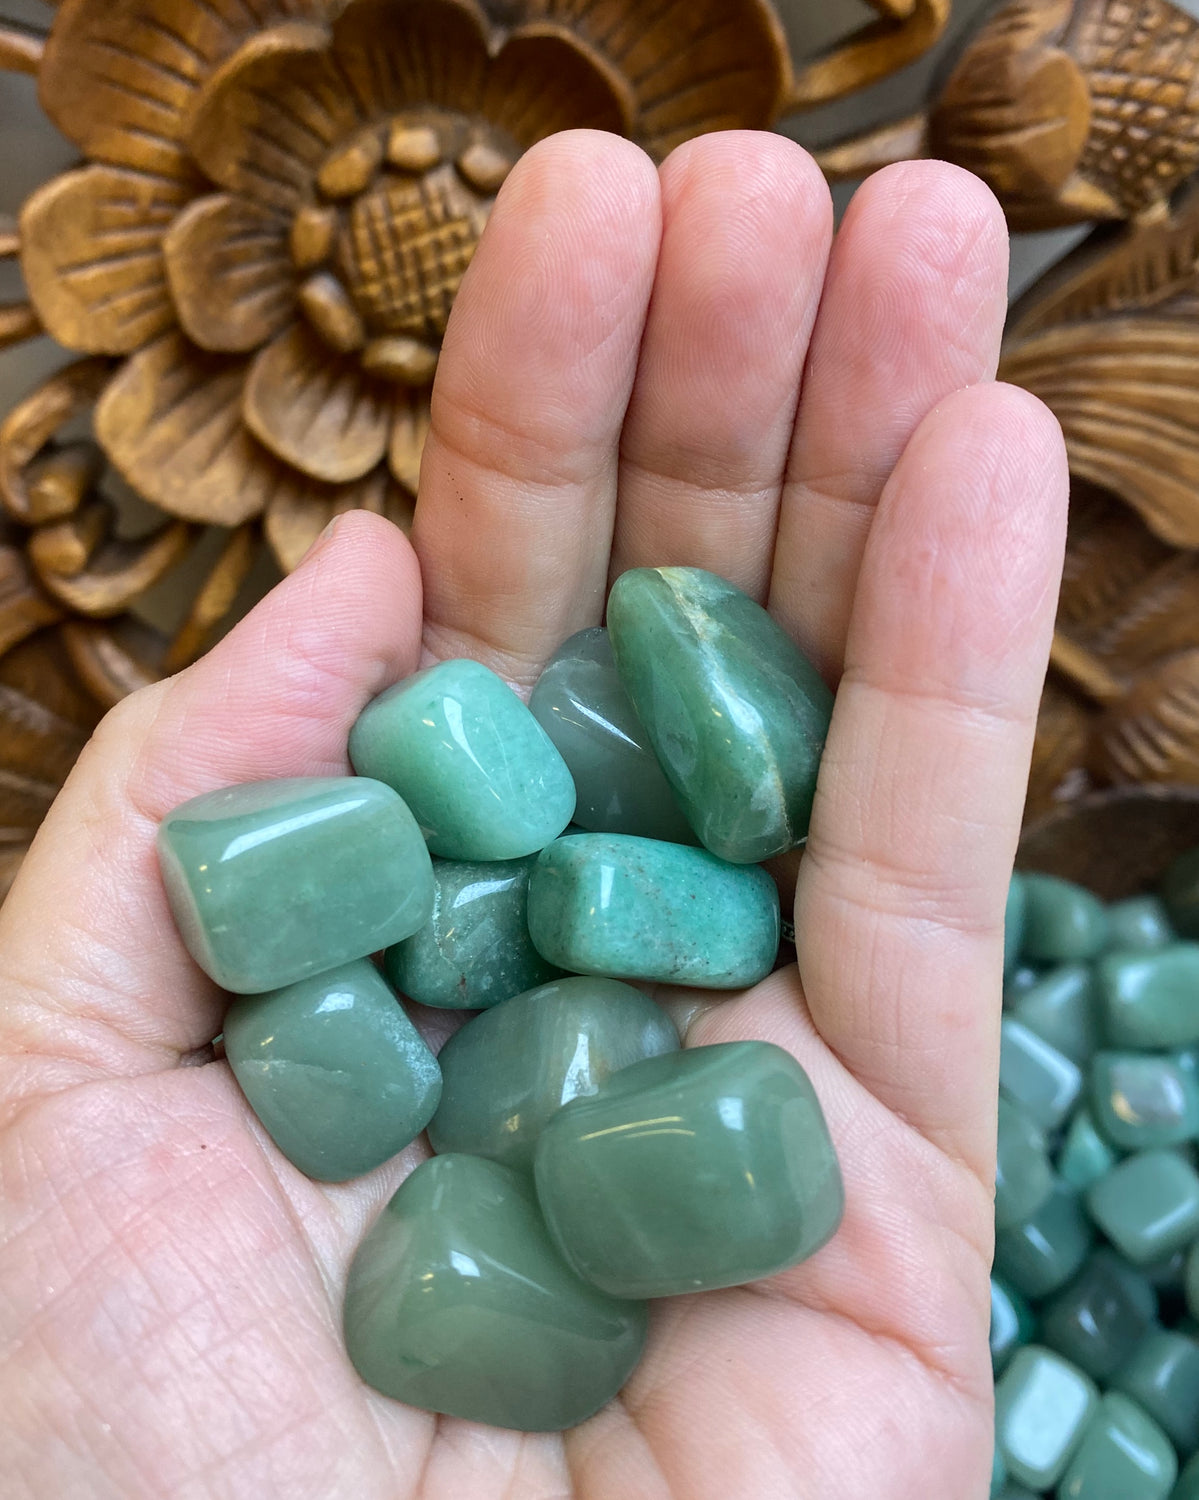 Green Aventurine Tumbles - 2 sizes available